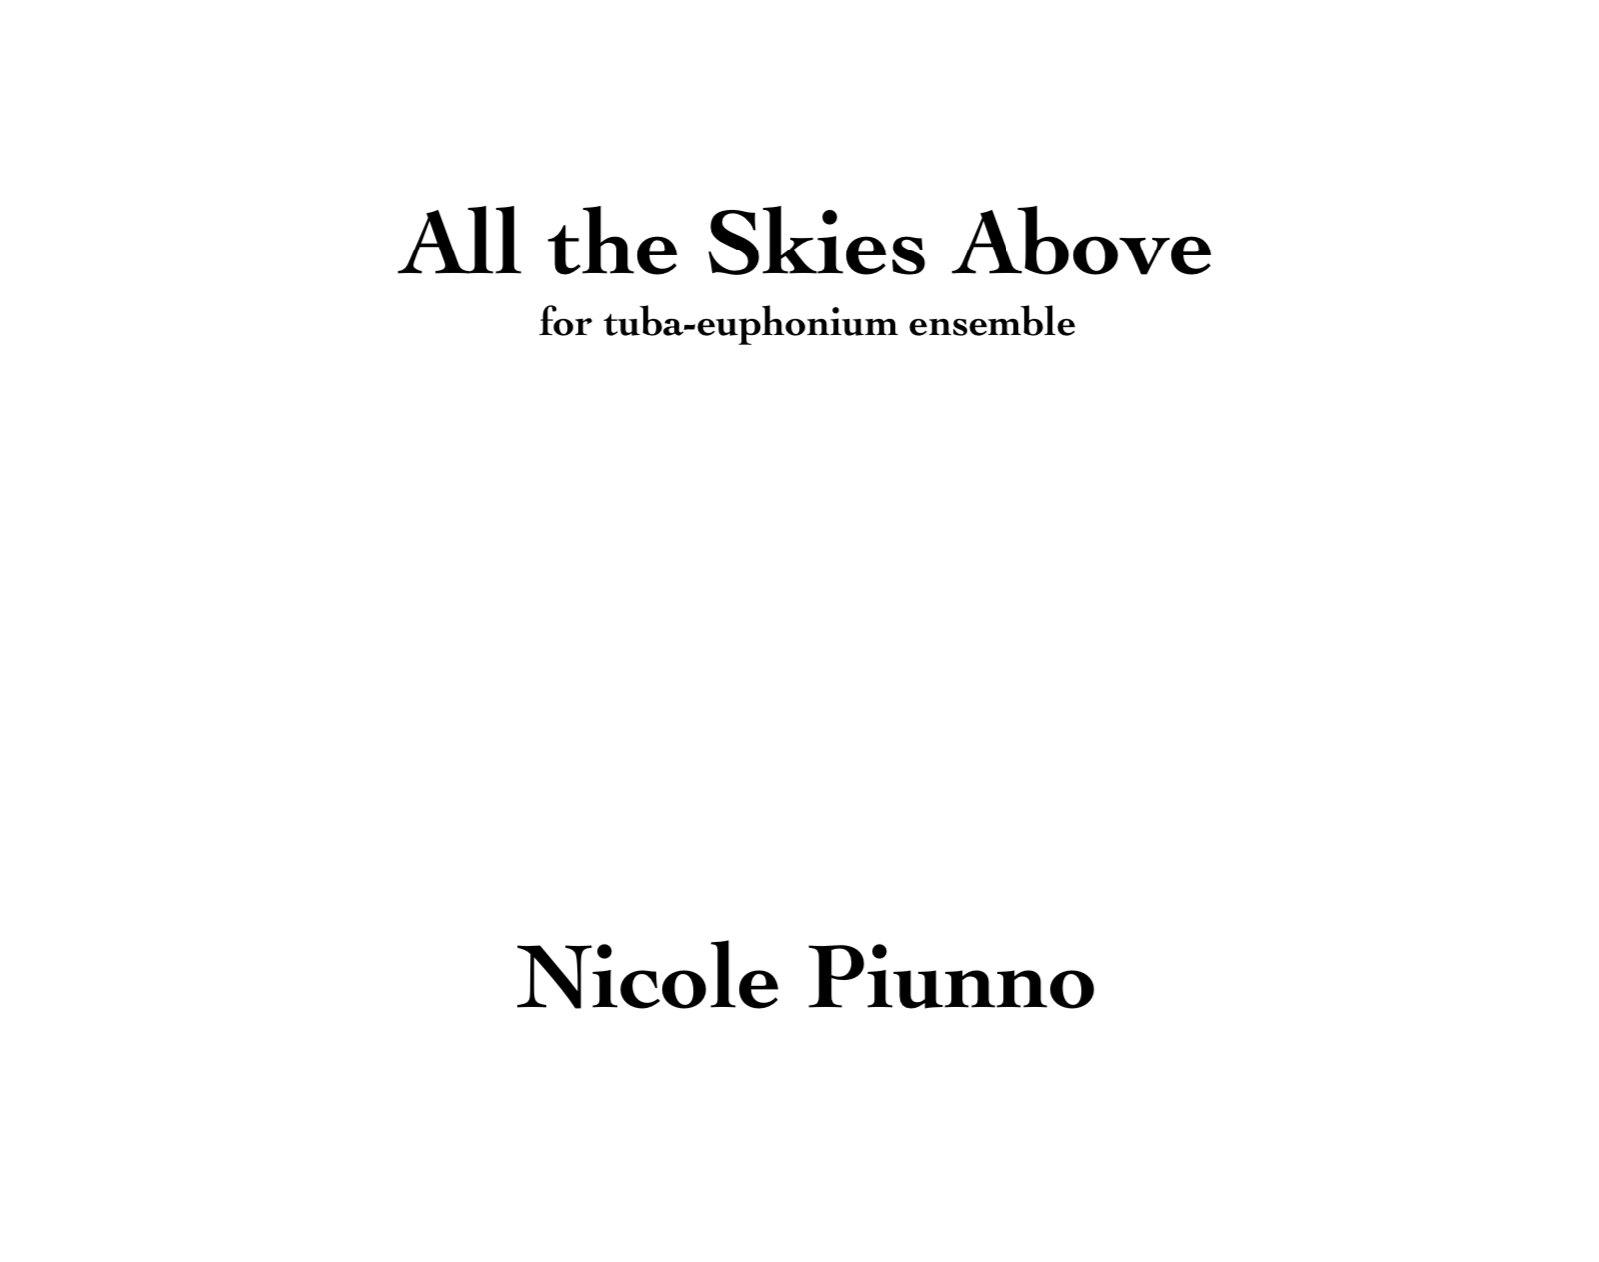 All The Skies Above (Tuba/Euph Version) by Nicole Piunno